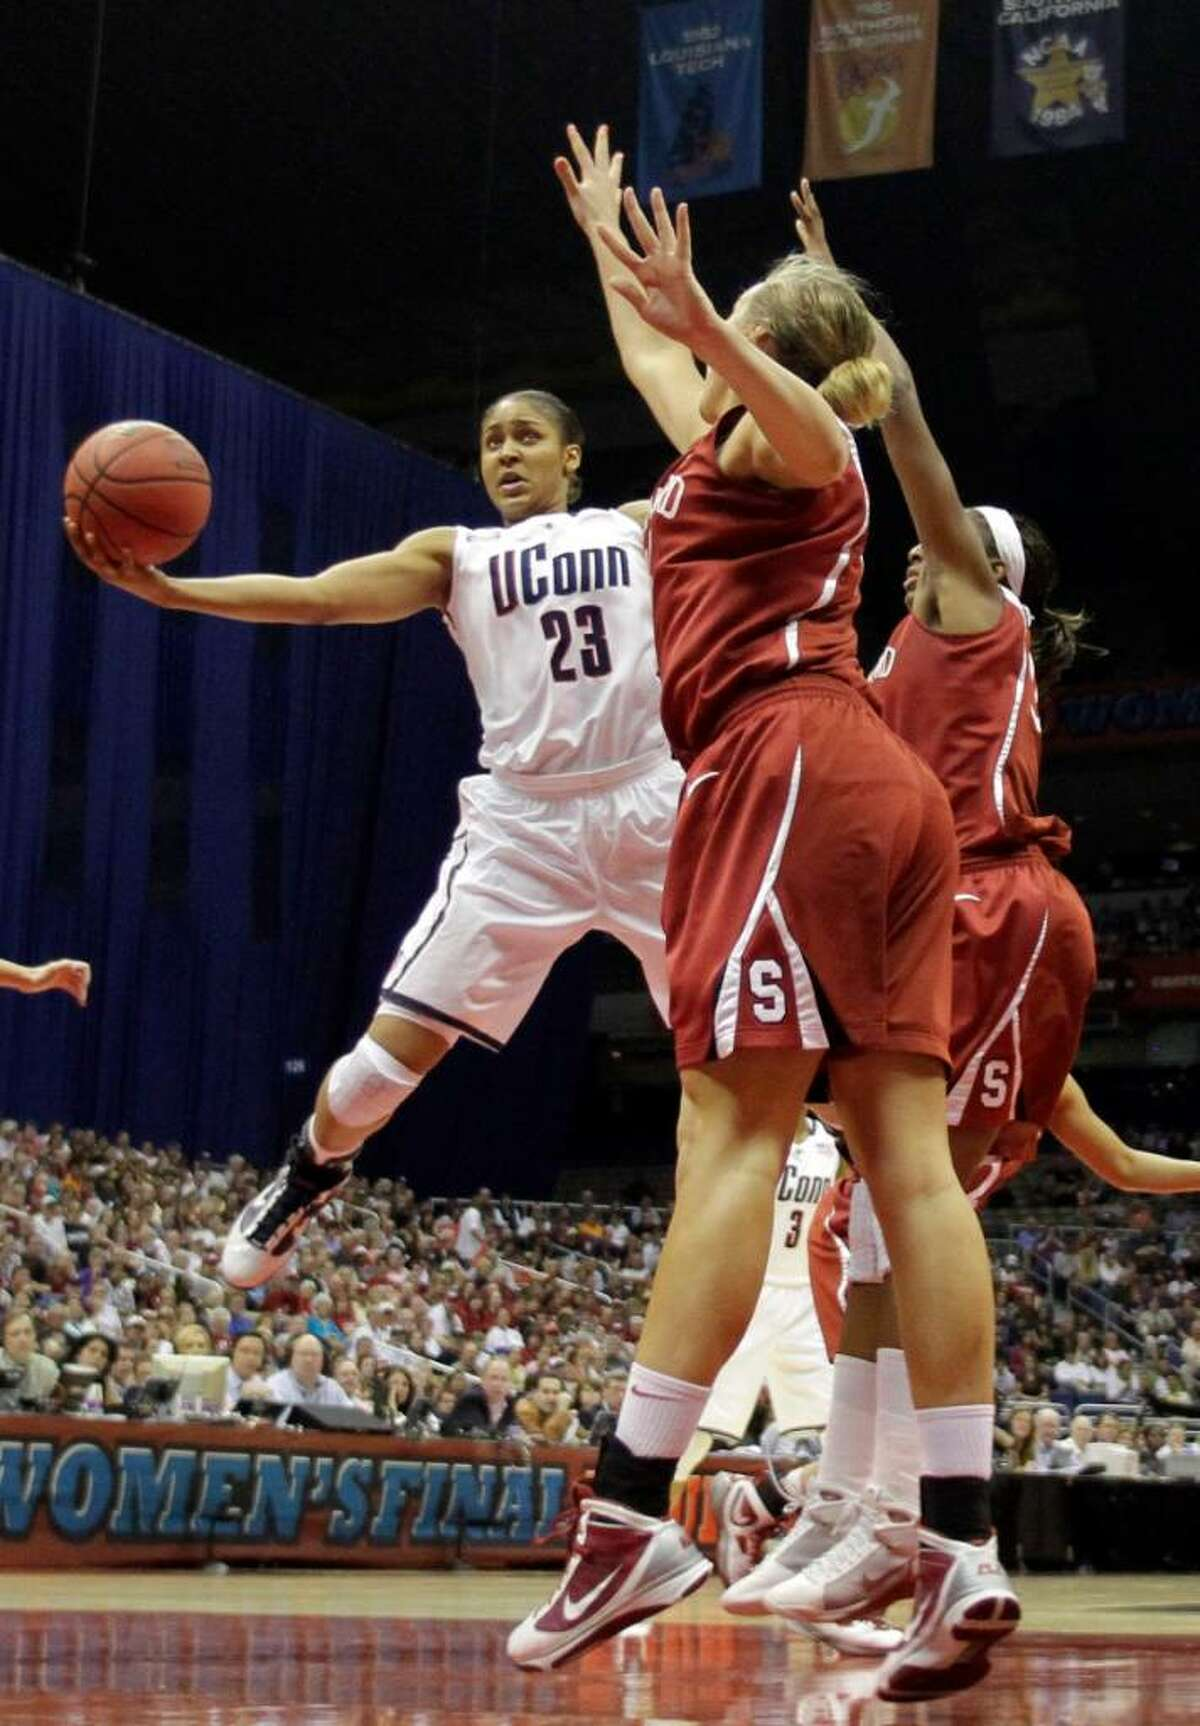 Connecticut's Maya Moore (23) attempts a shot over Stanford's Jayne Appel, front, in the first half of the women's NCAA Final Four college basketball championship game Tuesday, April 6, 2010, in San Antonio. (AP Photo/Eric Gay)